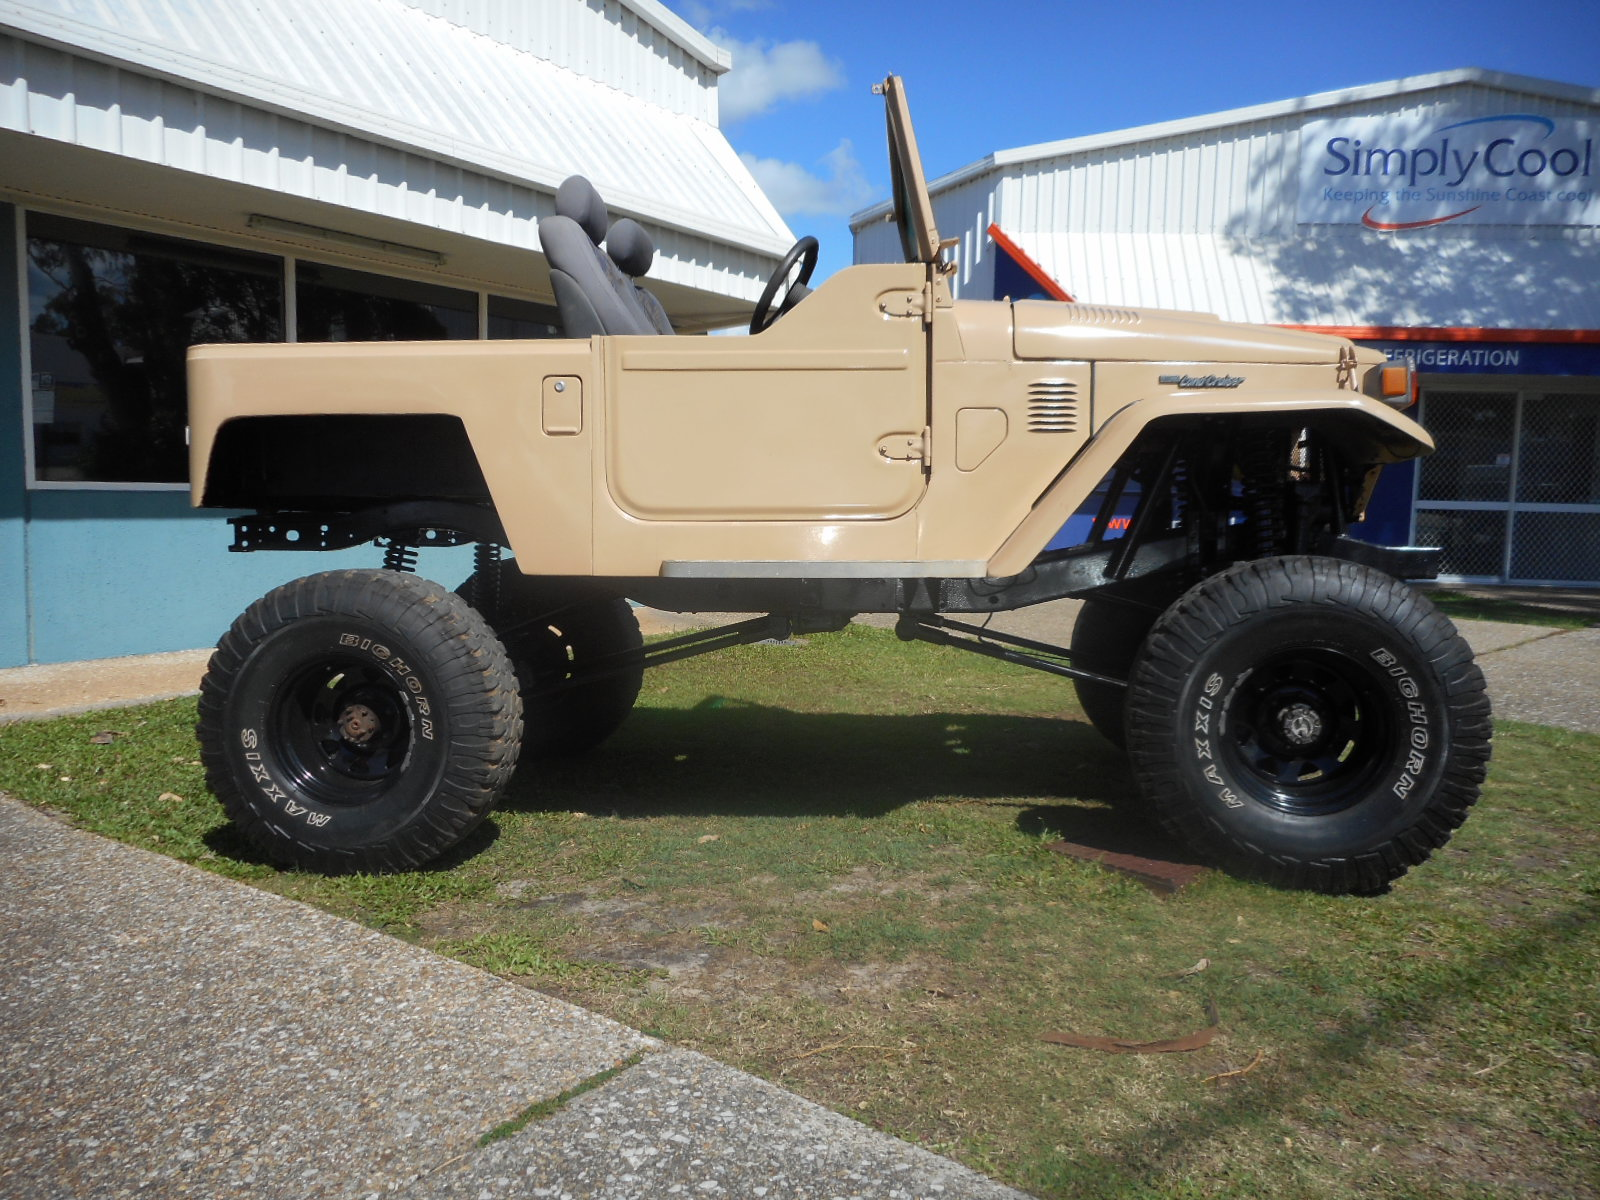 Fj40 For Sale - New Car Reviews 2019-2020 by